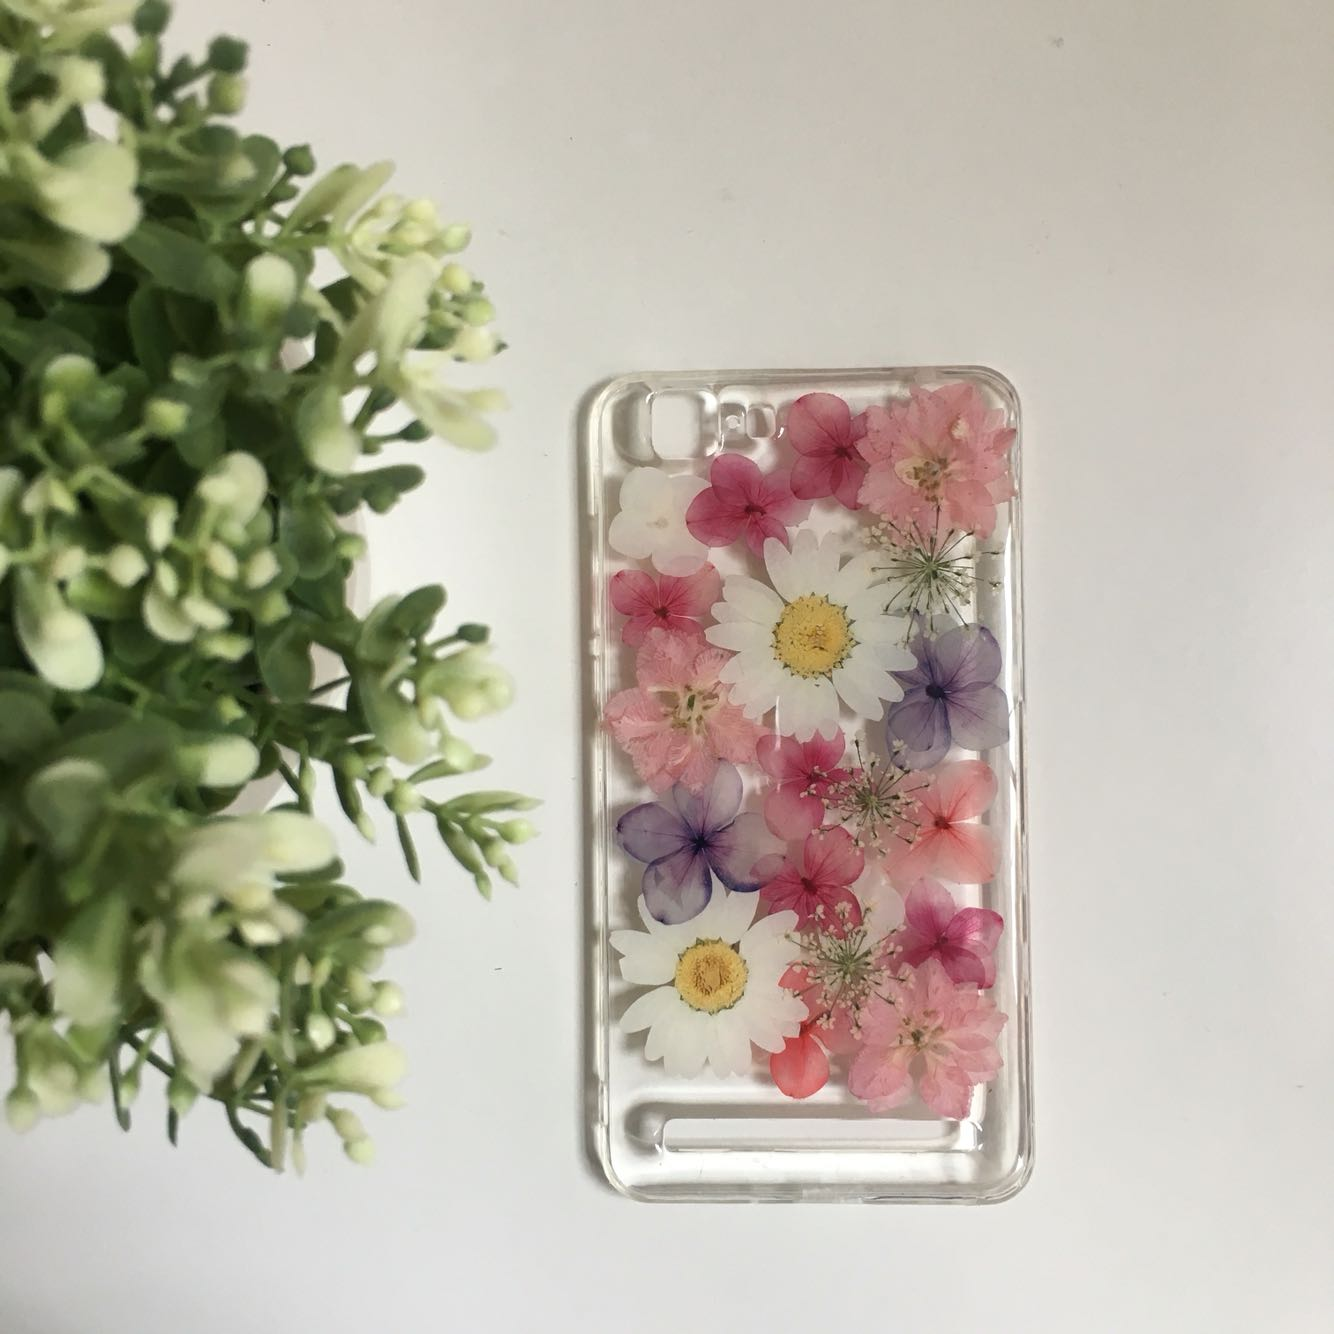 Philippines Artistic Dried Flowers Real Flowers Full Phone Case